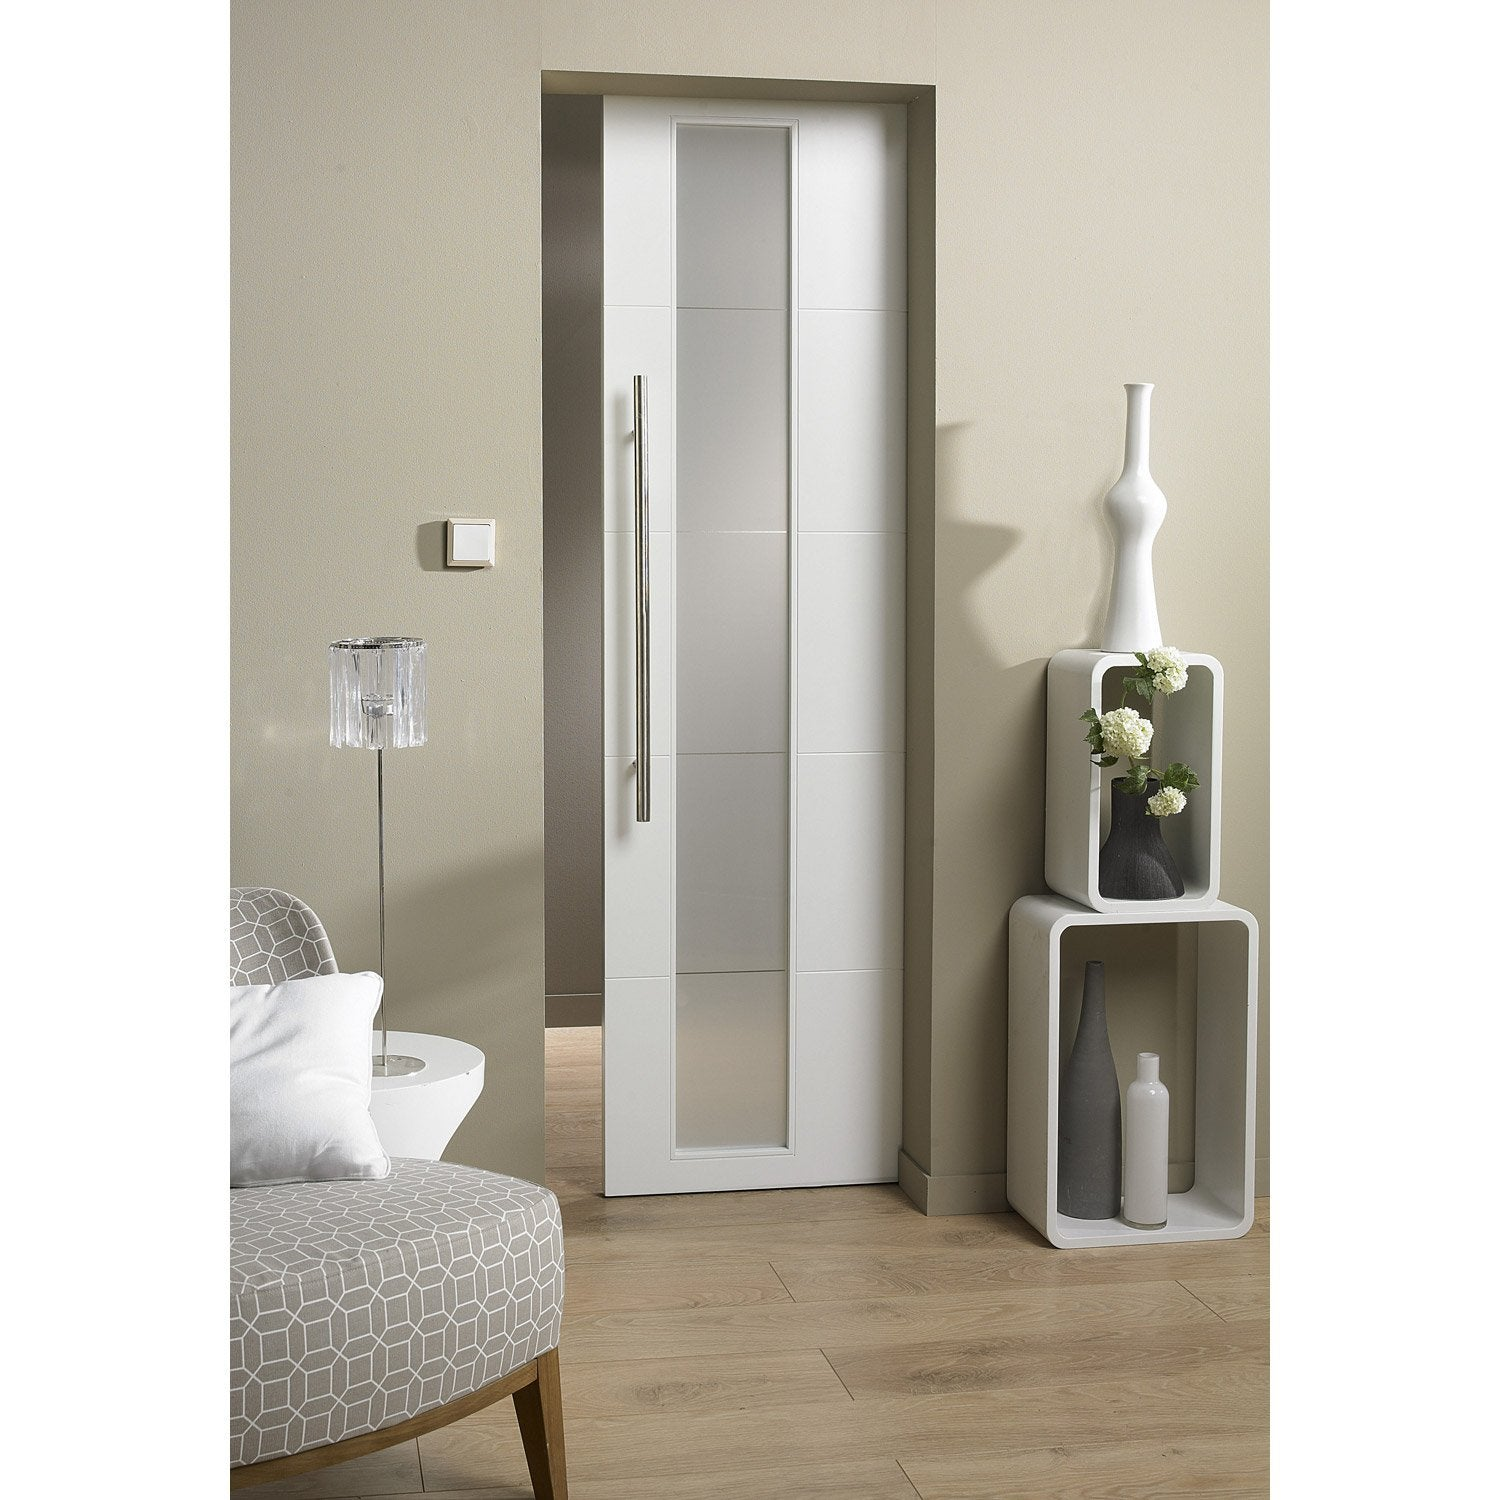 Ensemble porte coulissante alaska mdf laqu avec galandage for Porte interieur salon